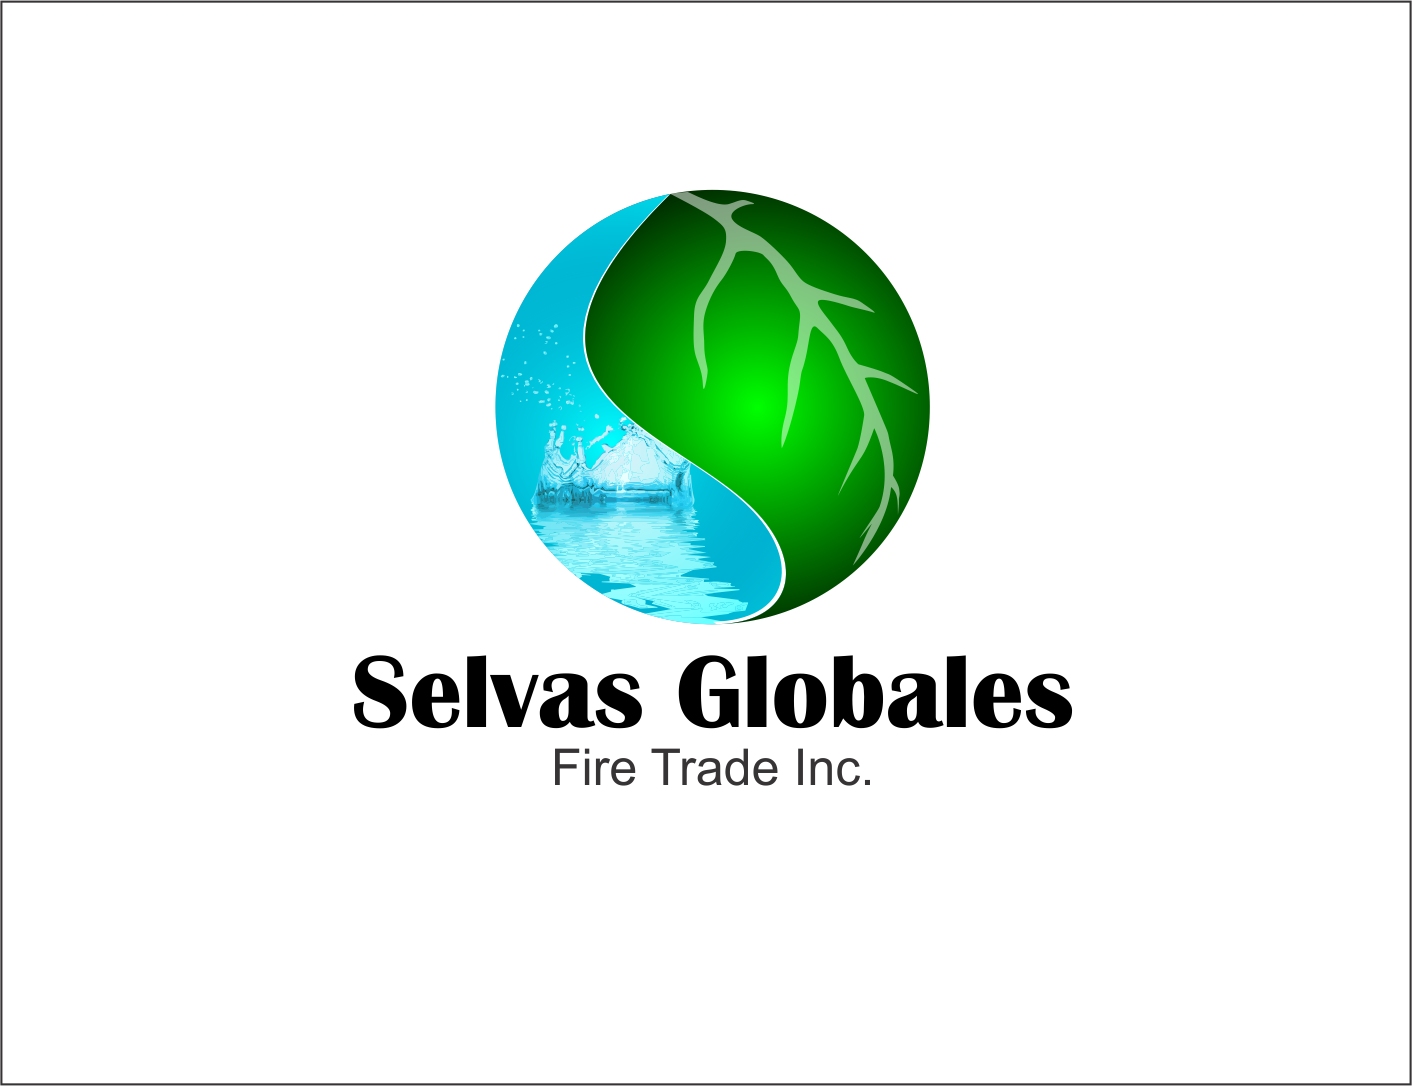 Logo Design by Agus Martoyo - Entry No. 123 in the Logo Design Contest Captivating Logo Design for Selvas Globales Fair Trade Inc..